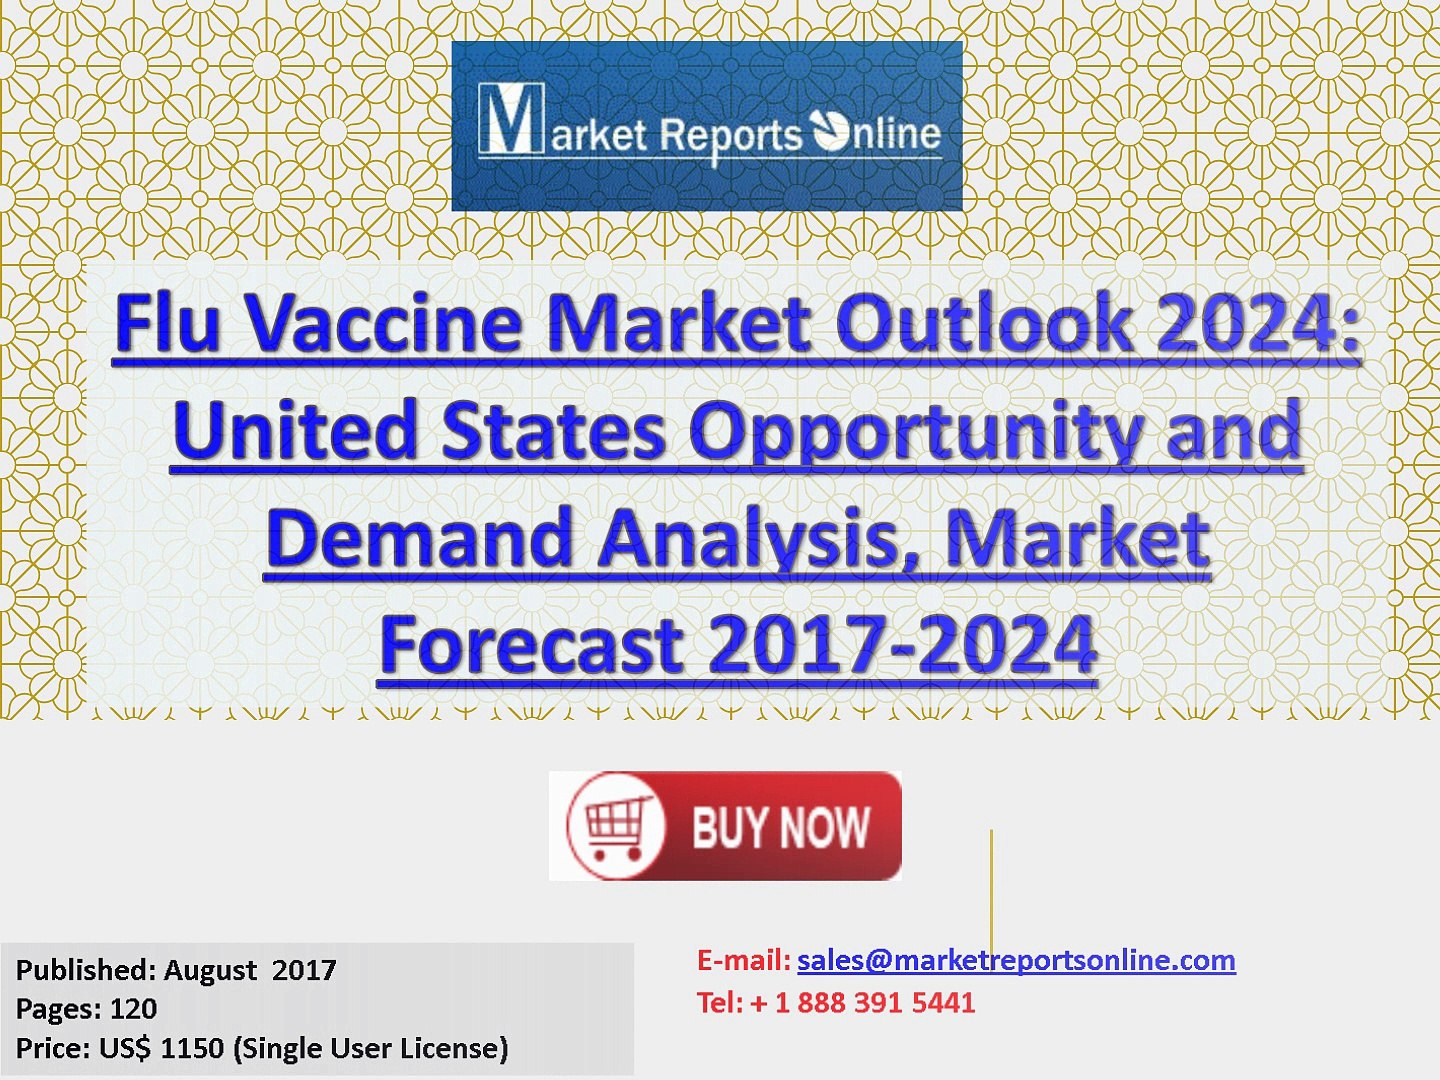 Flu Vaccine Market Outlook 2024: United States Opportunity and Demand Analysis, Market Forecast 2017